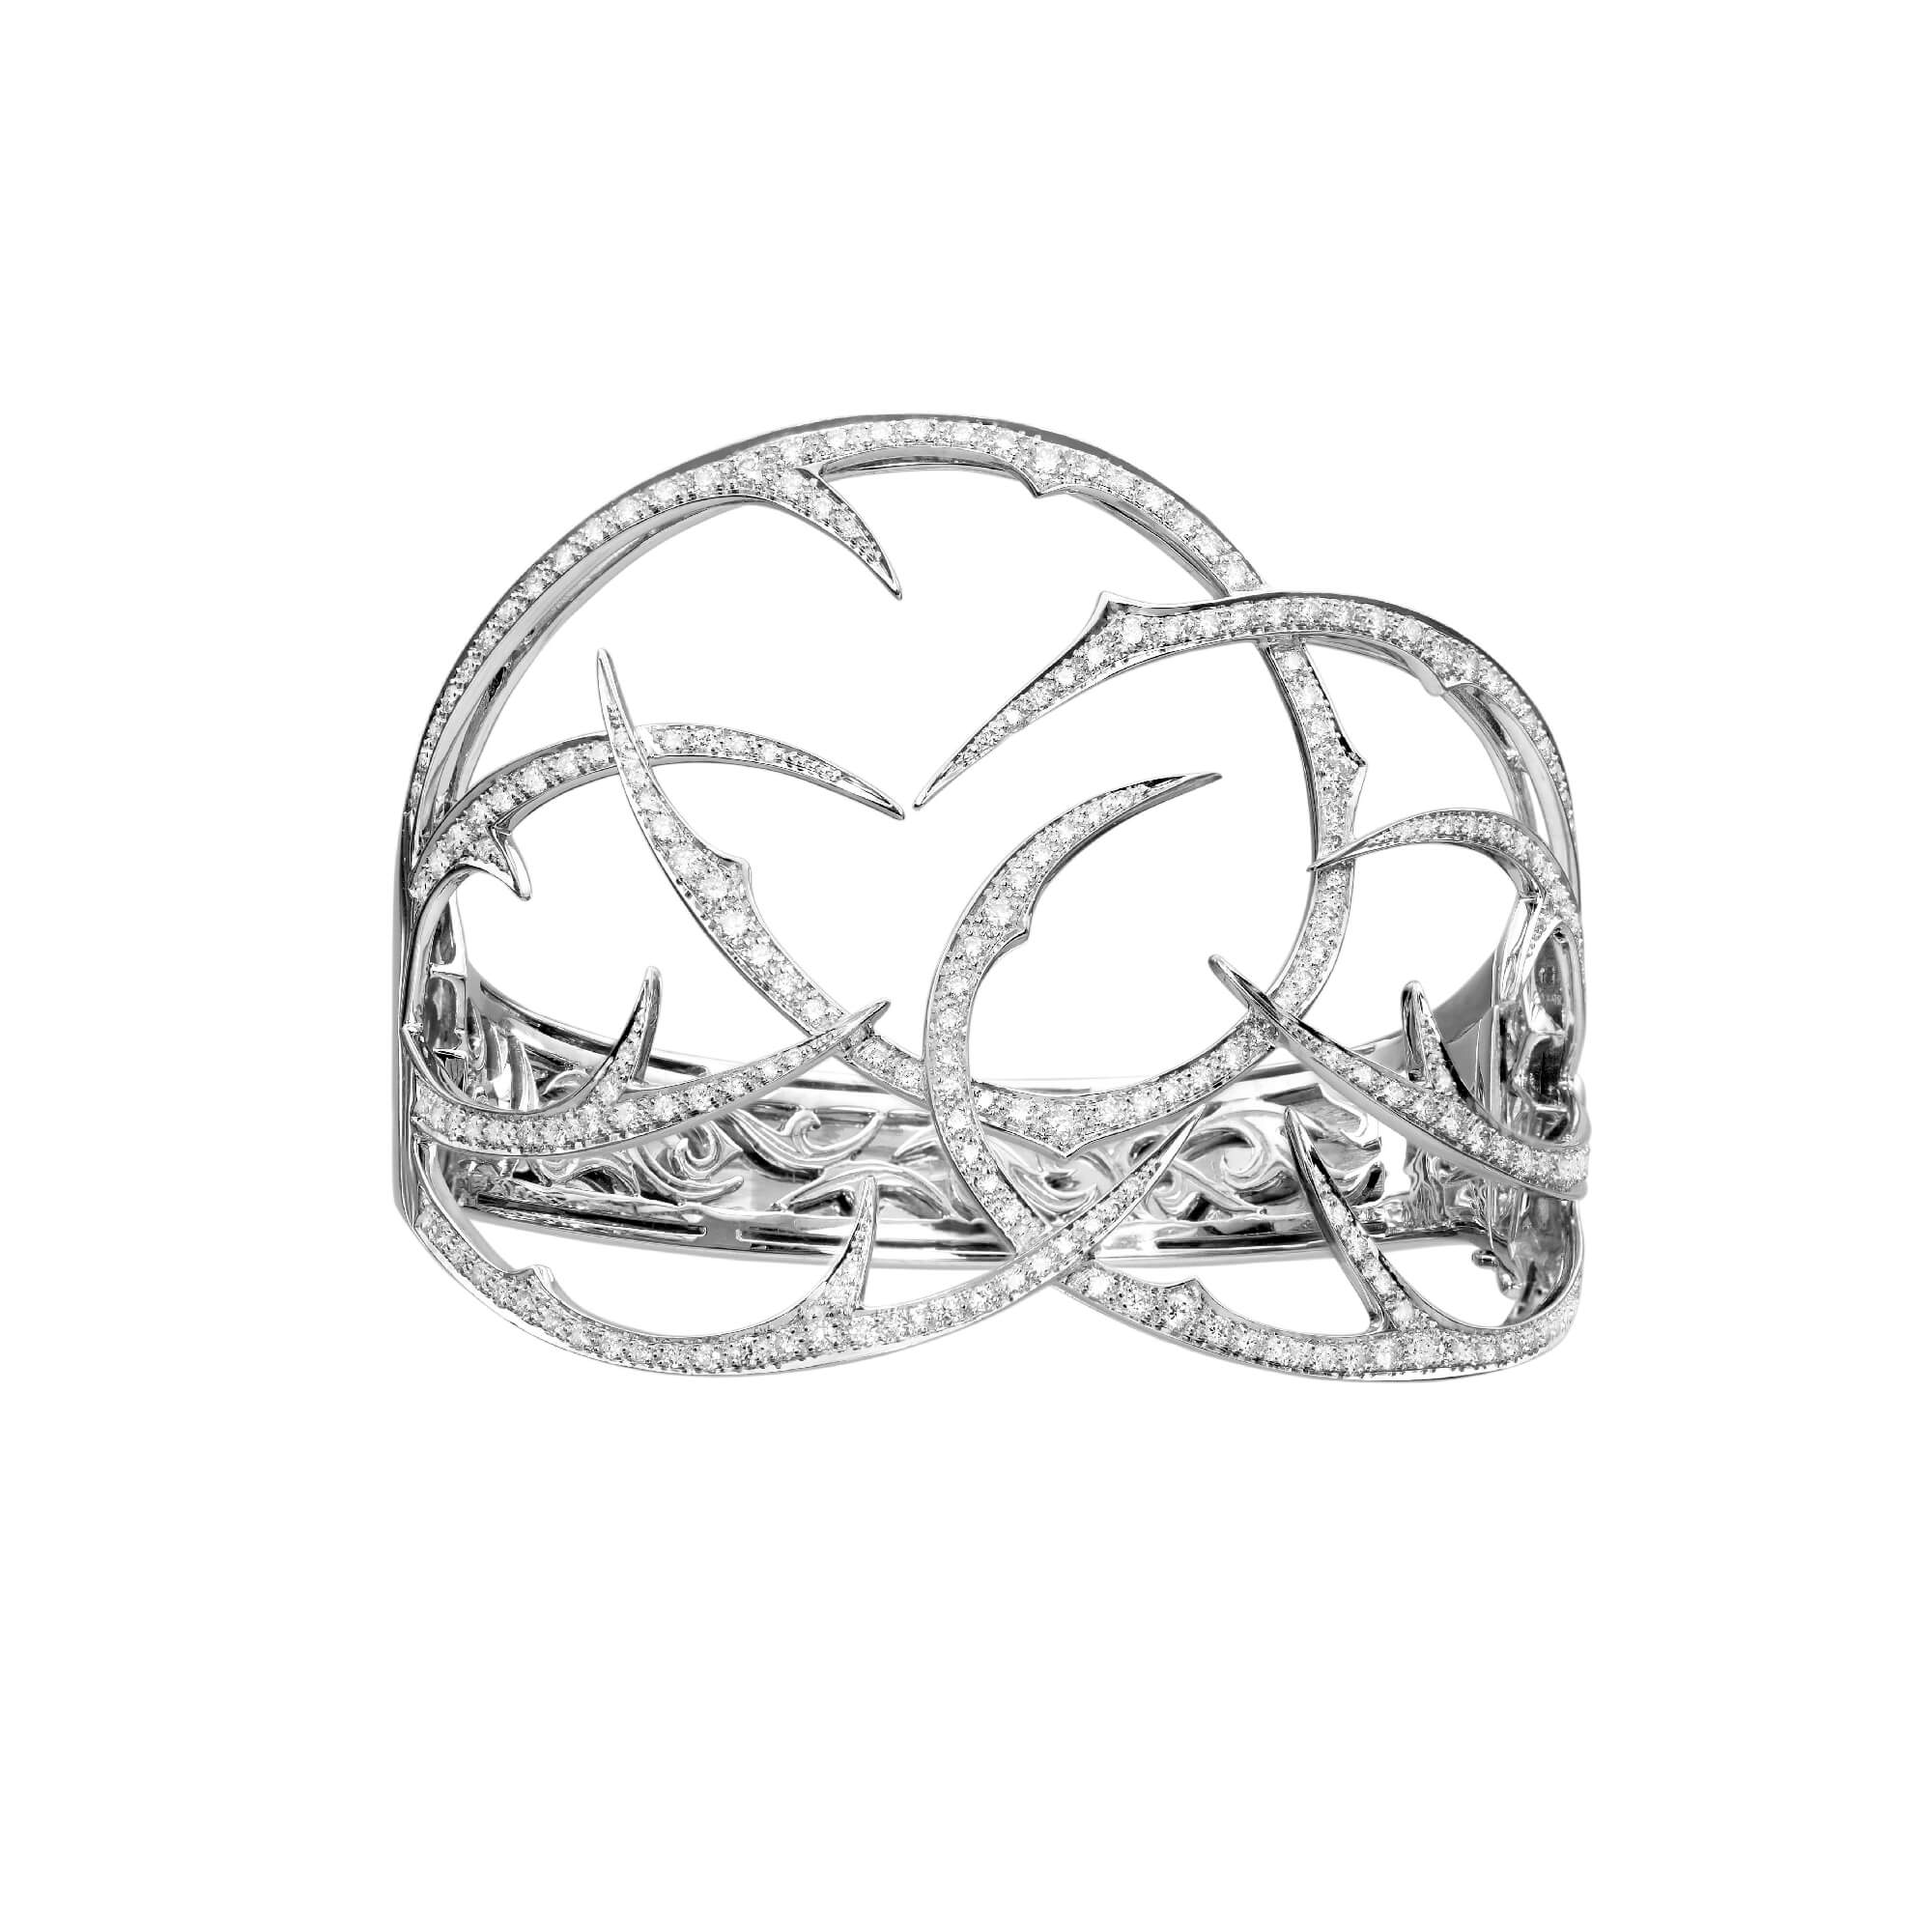 White Gold Cuff with White Diamond | Thorn